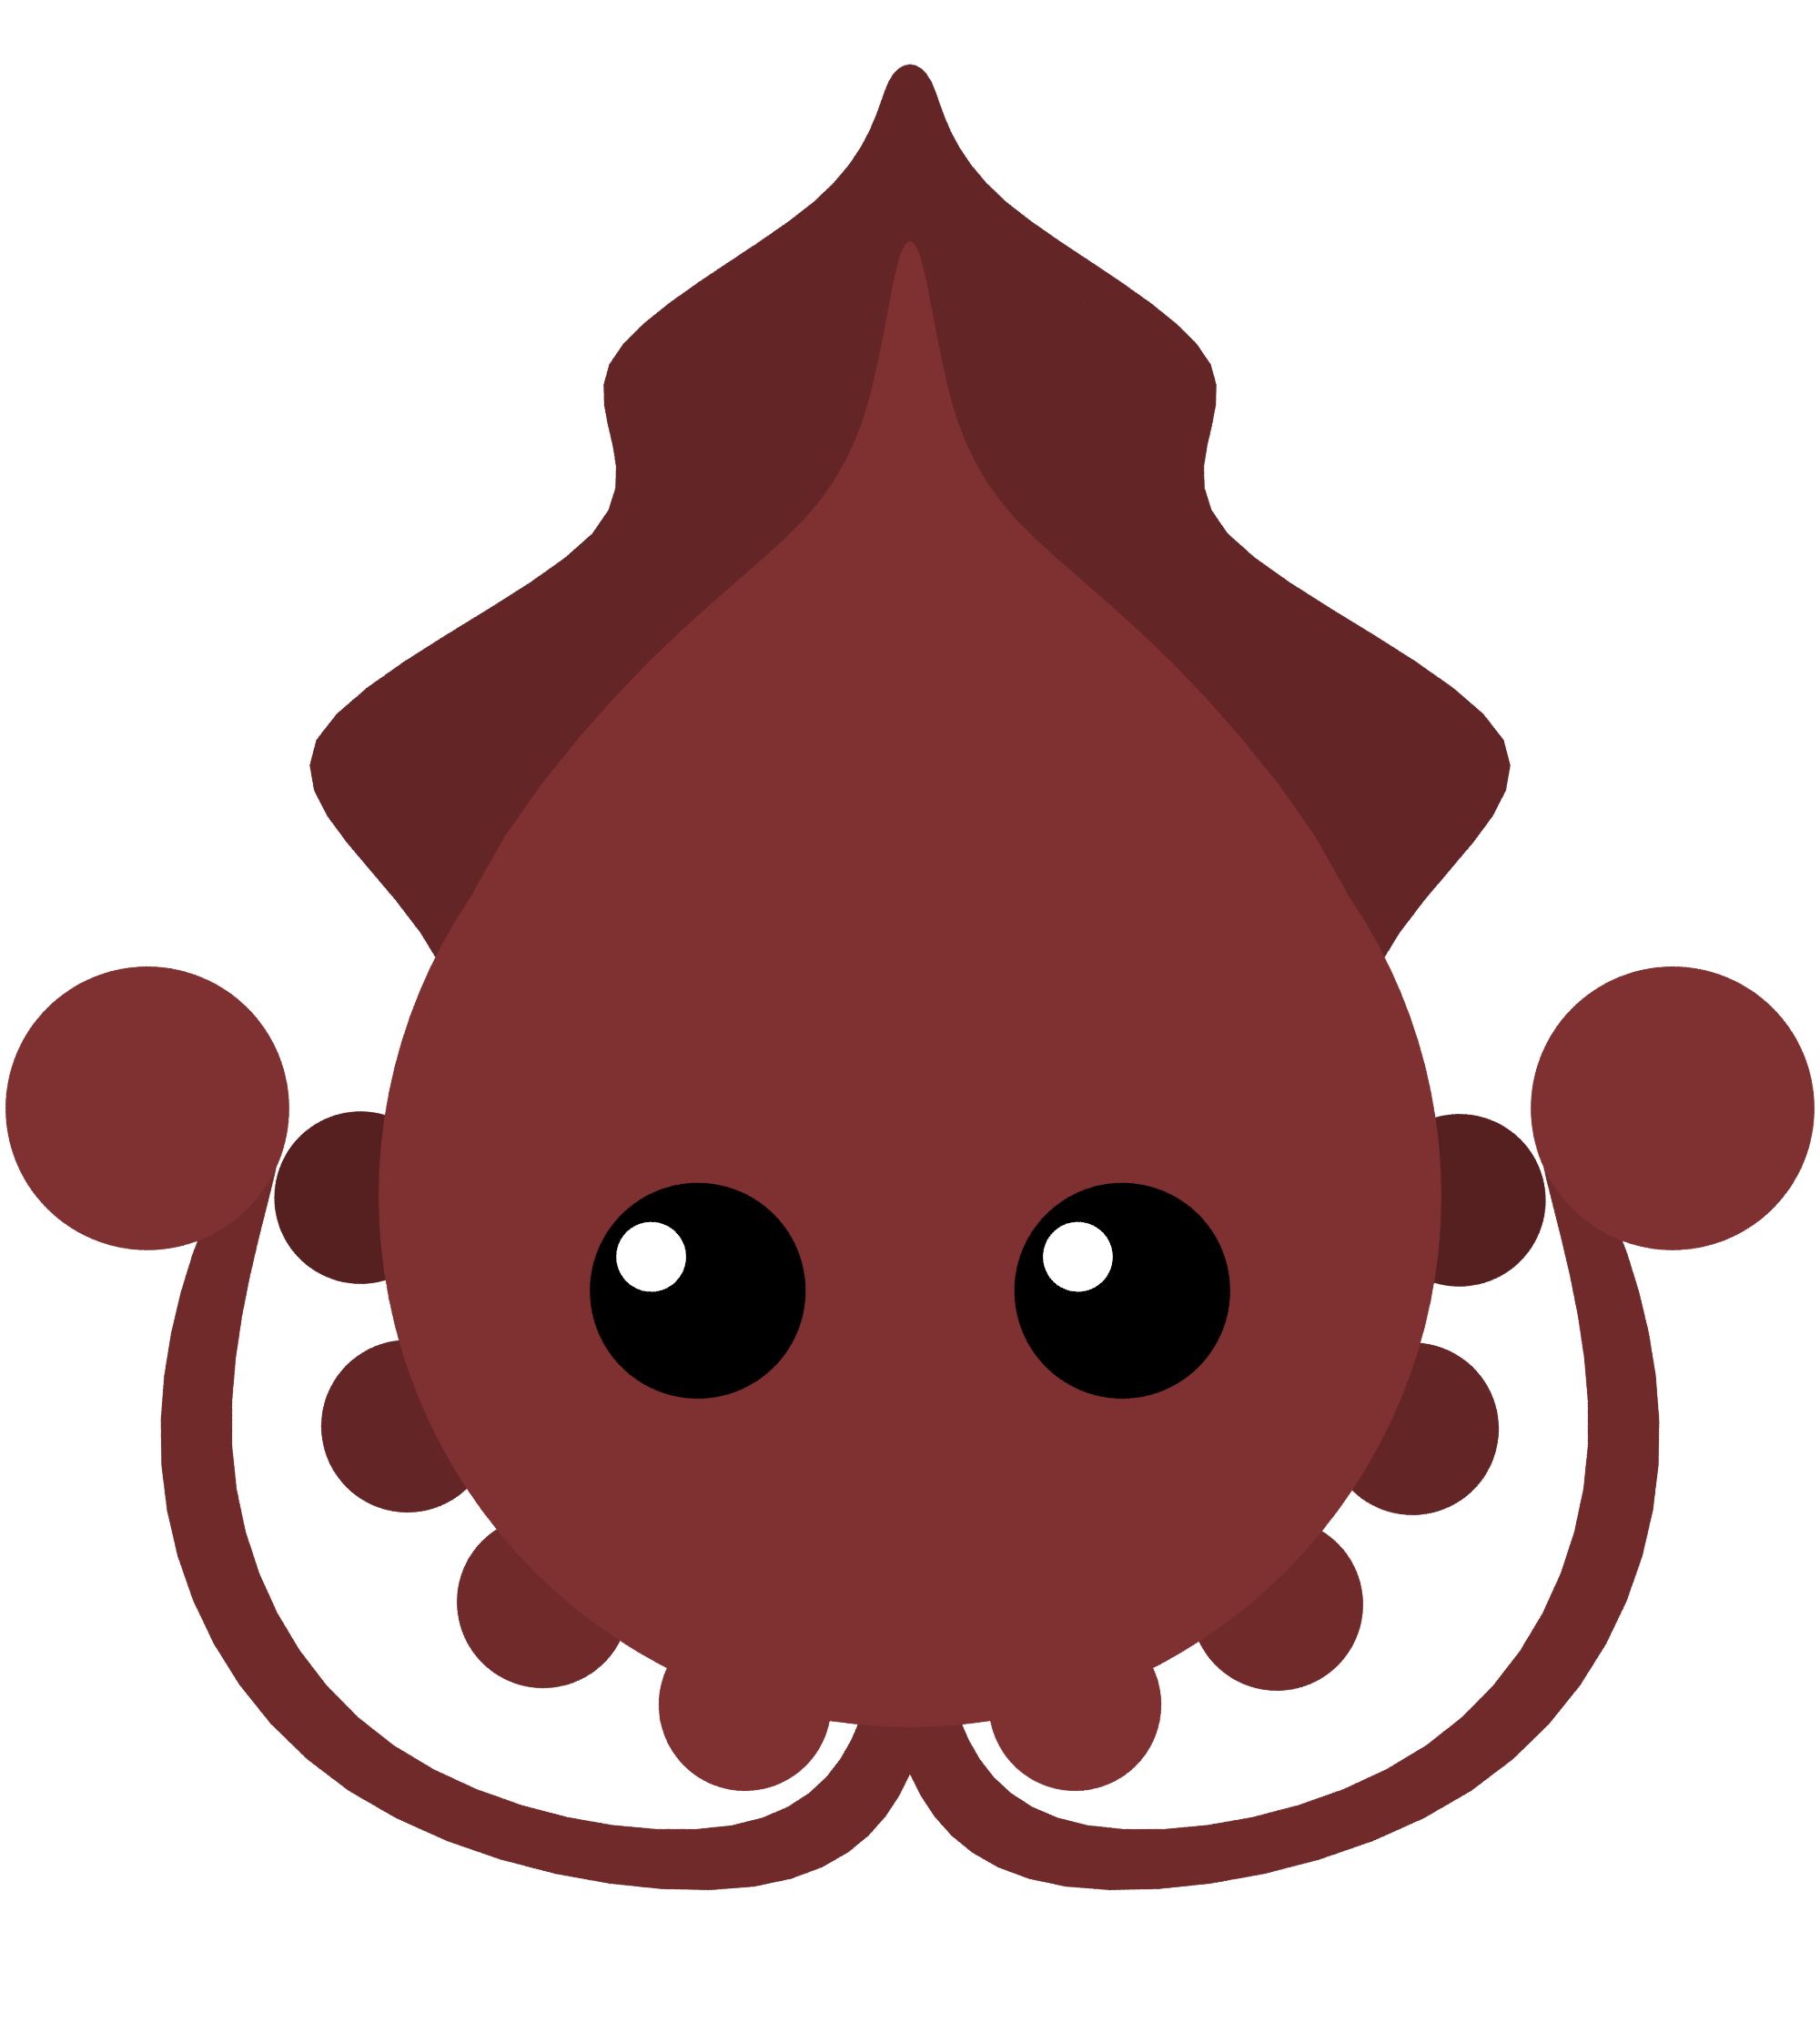 Squid clipart cartoon angry, Picture #2077099 squid clipart.